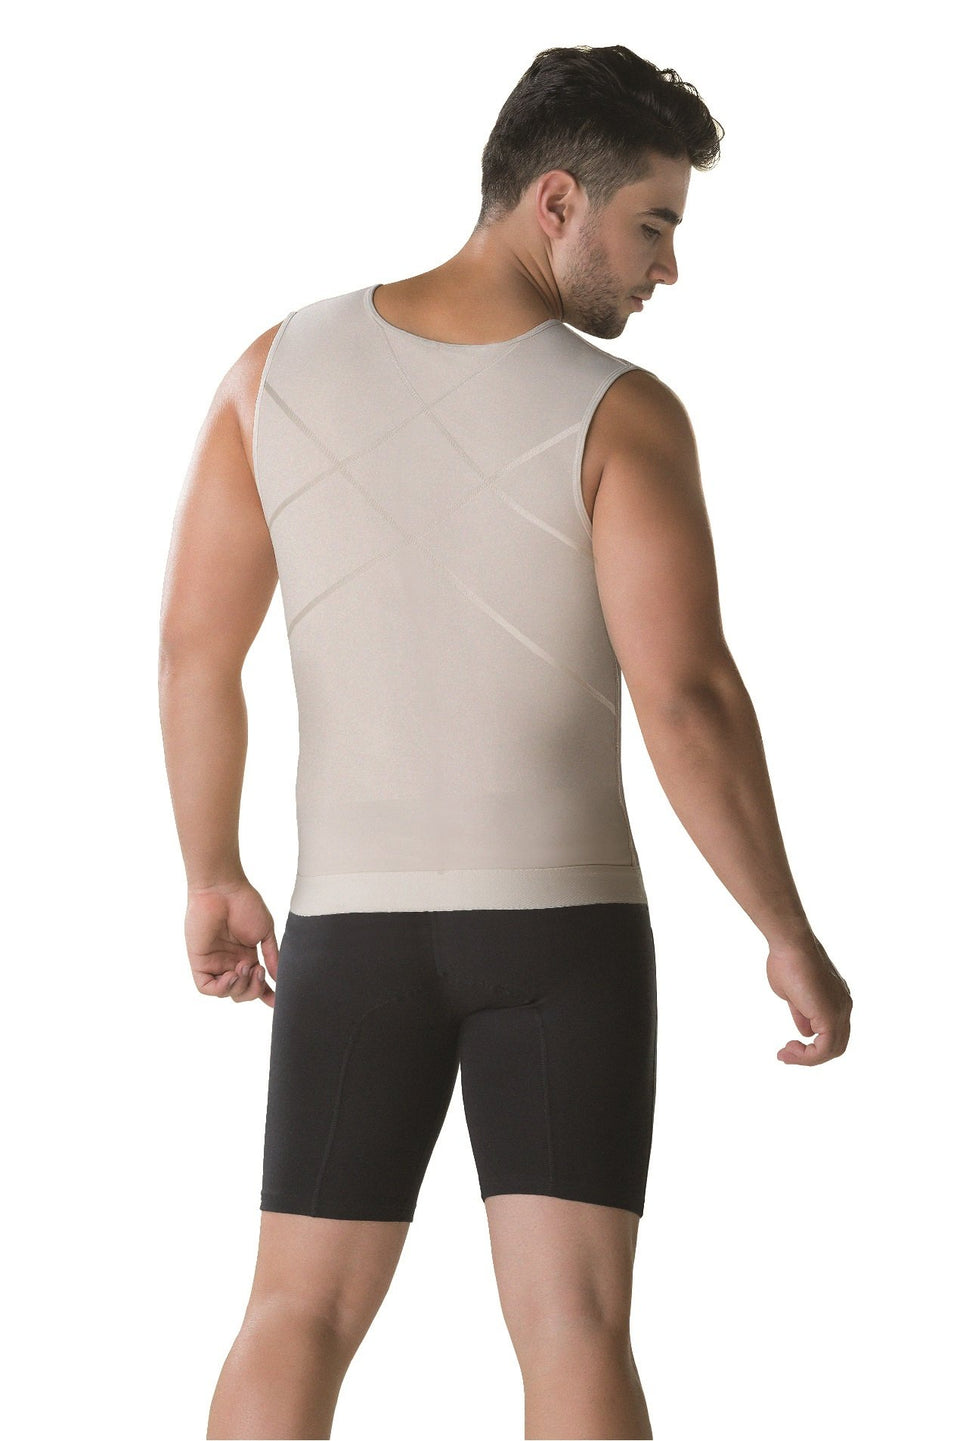 shapewear, mens, cmopression shirt, slimming shirt, mens slimming body shaper, mens shapewear